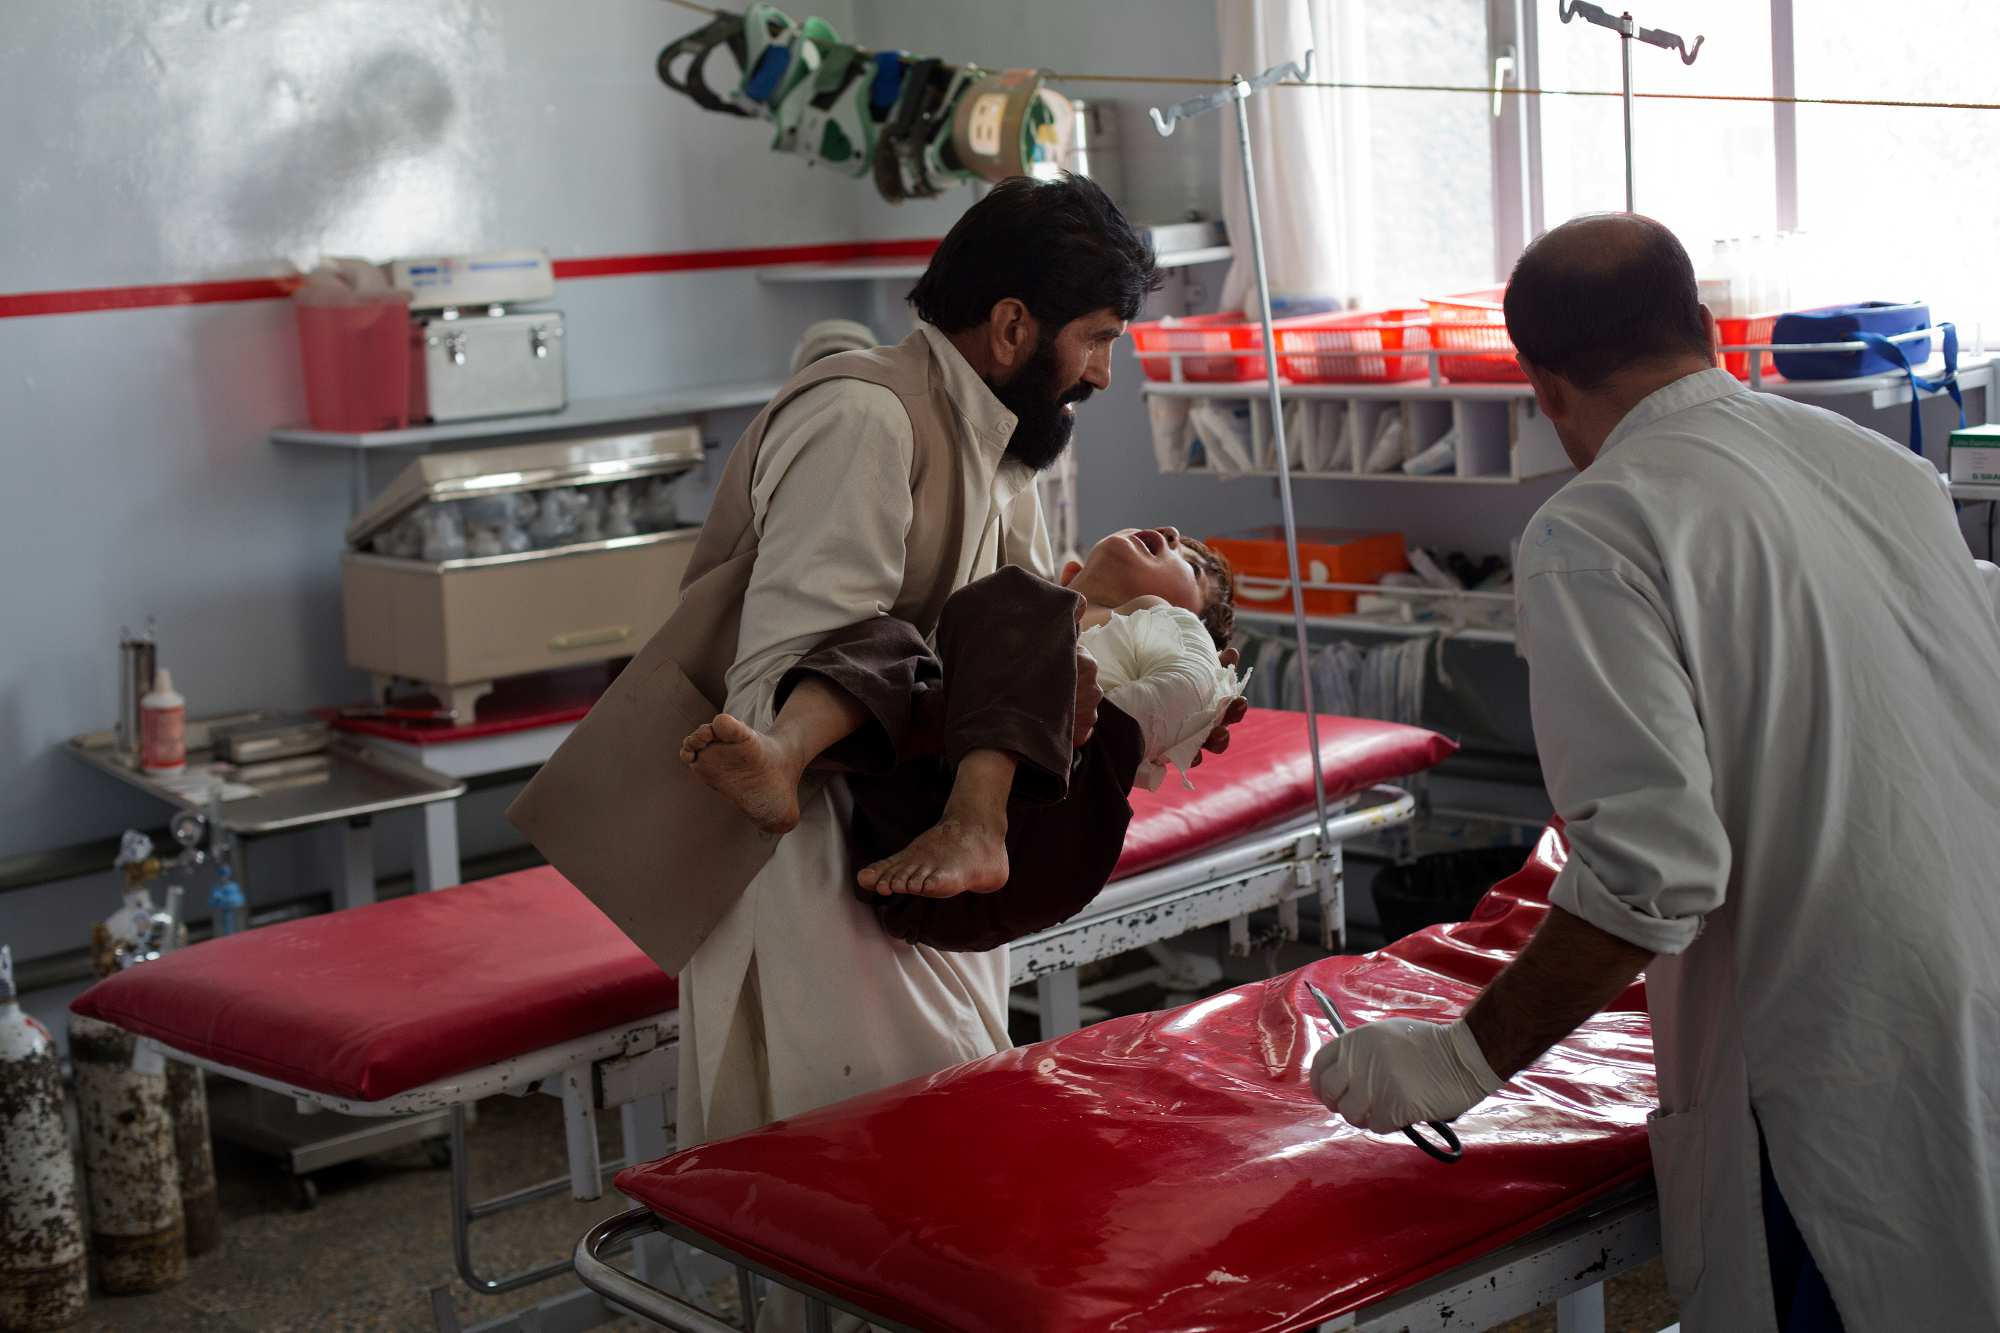 Noor Pacha carries his son, Noorullah, 7, into the Outpatient Department at Emergency Hospital. Noorullah was in their home in Pirkuti, Paktika province, when the Afghanistan National Security Forces engaged the Taliban in a firefight, around 6 o'clock in the evening. A blast sent shrapnel through the window, and hit Noorullah in the arm and back.